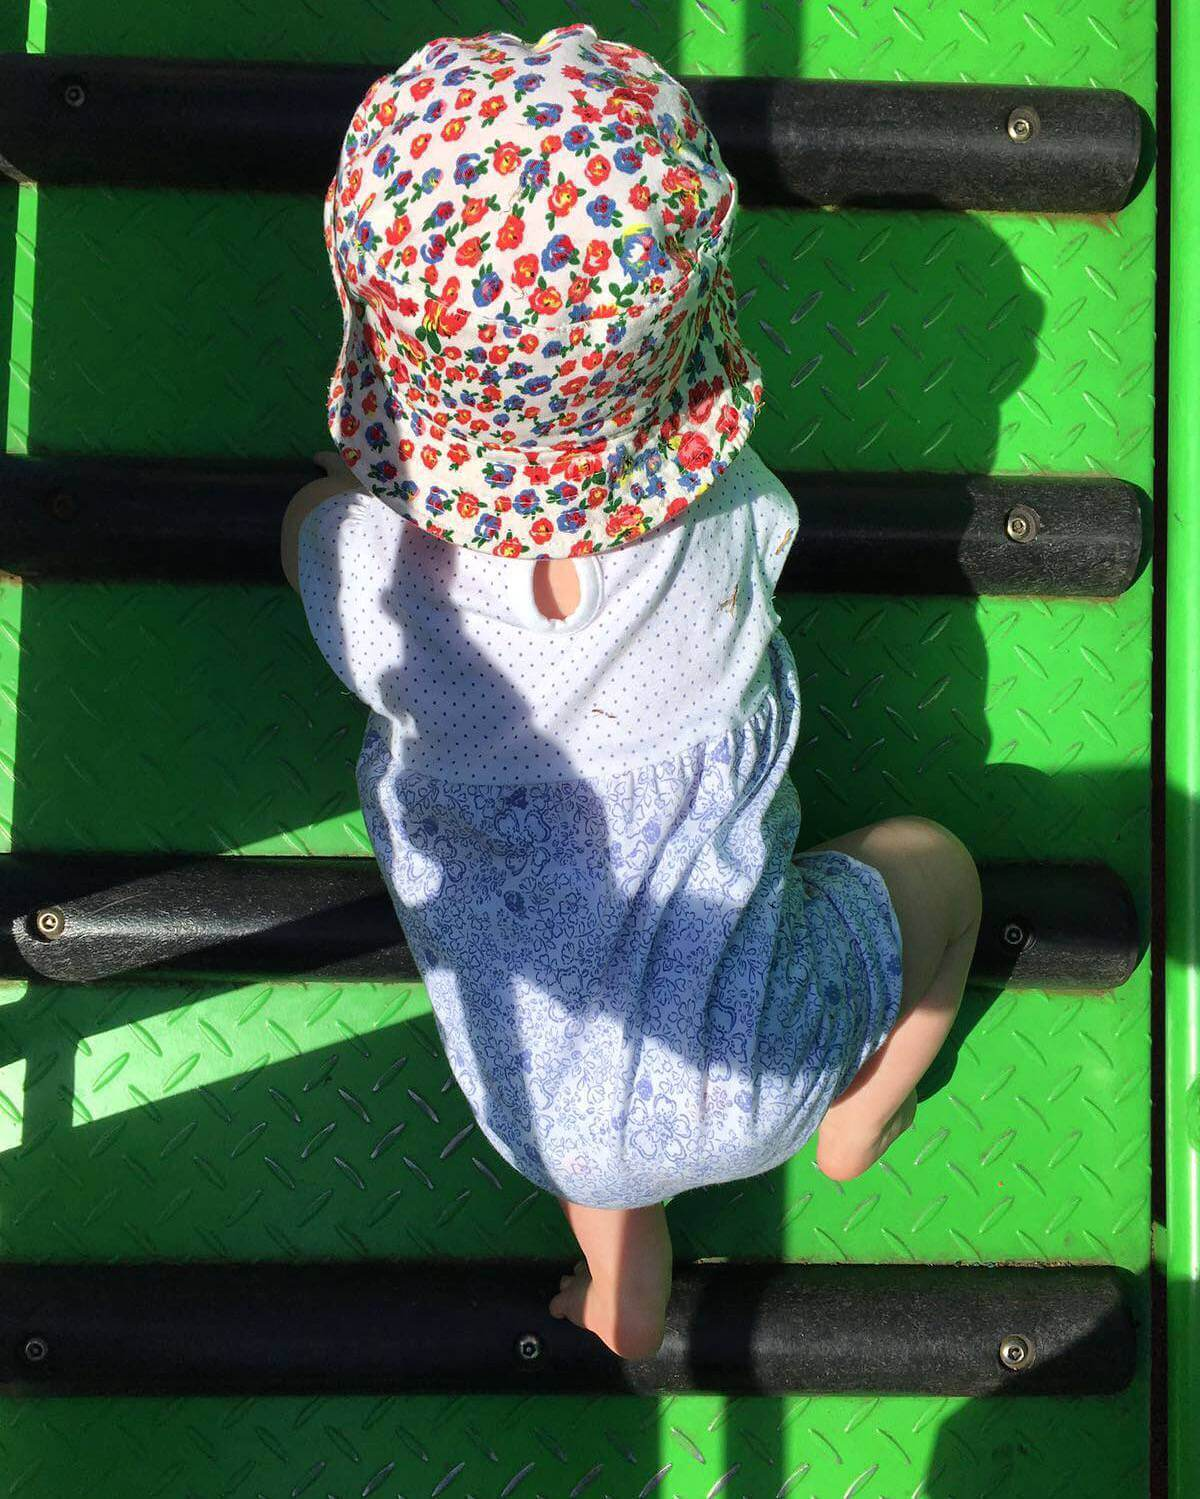 #Parklife – Keeping Toddlers Active